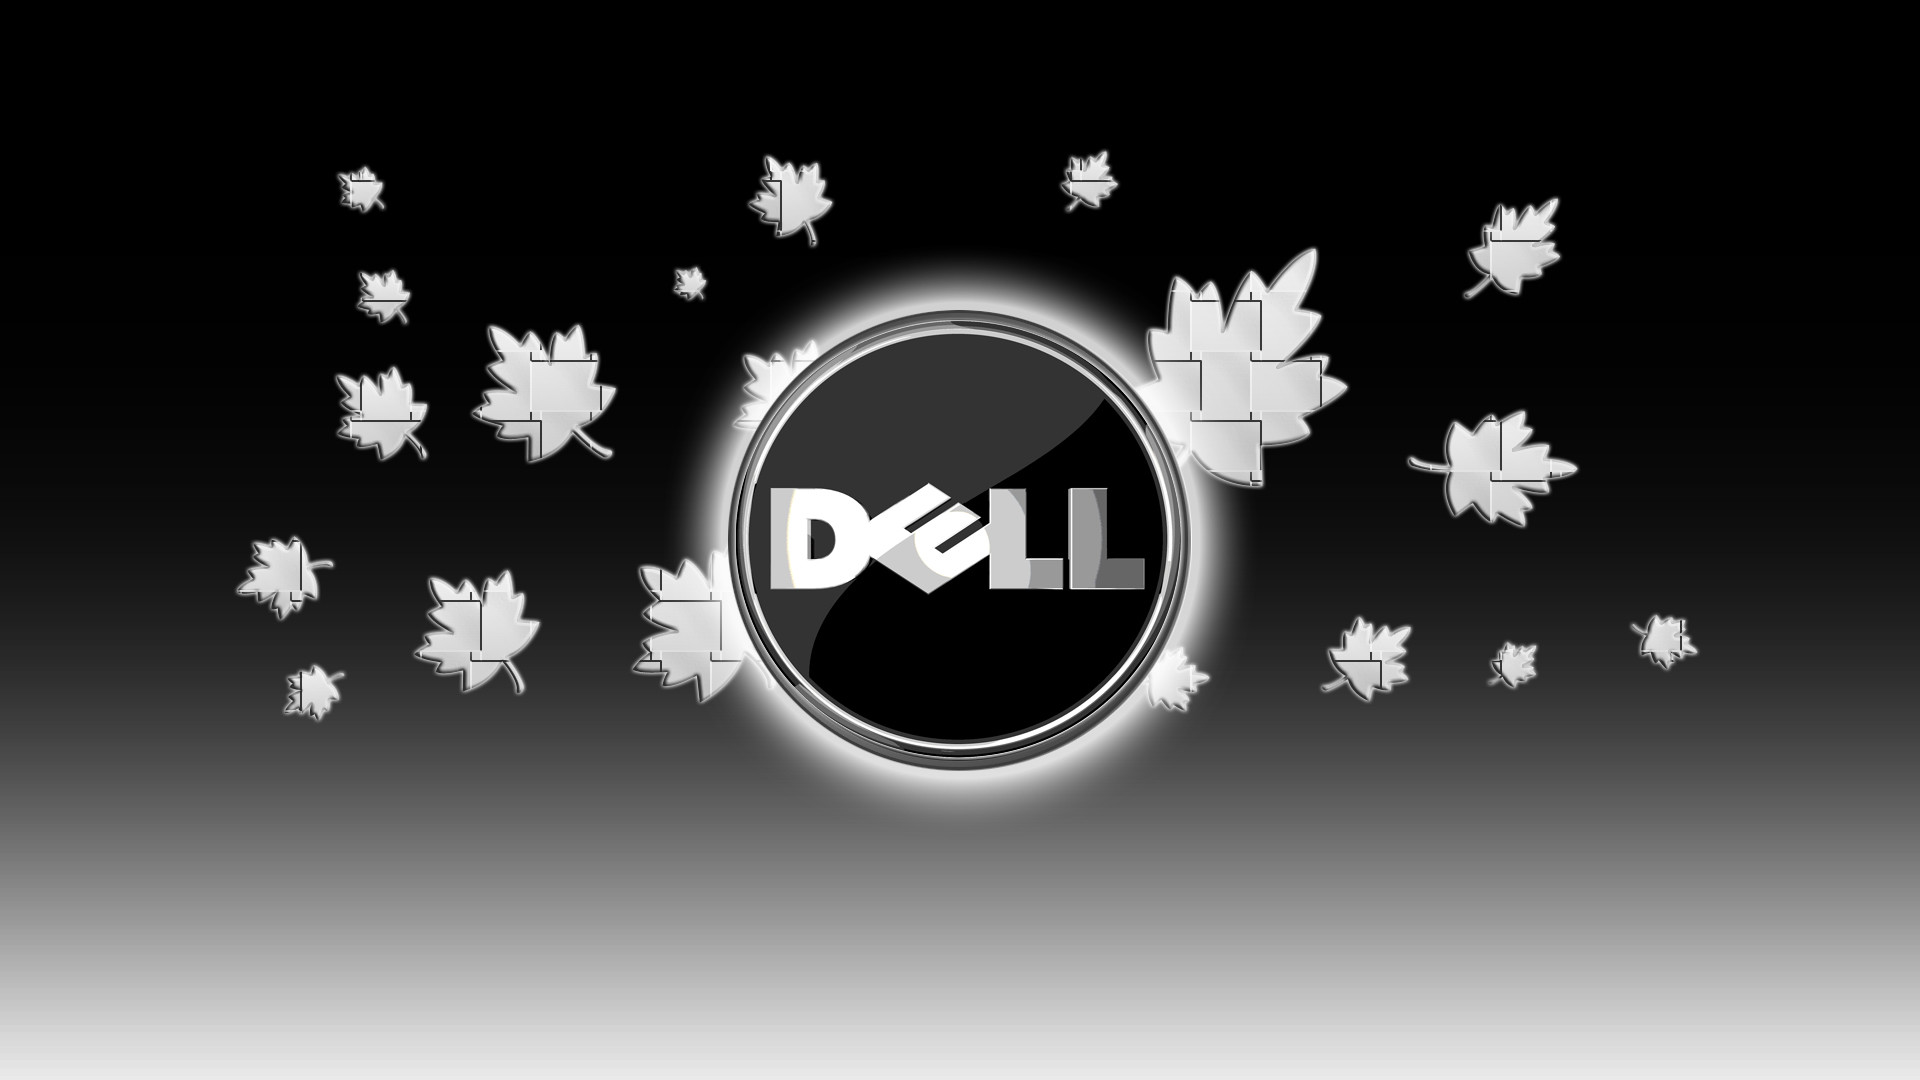 HD Dell Wallpapers. Original Resolution px